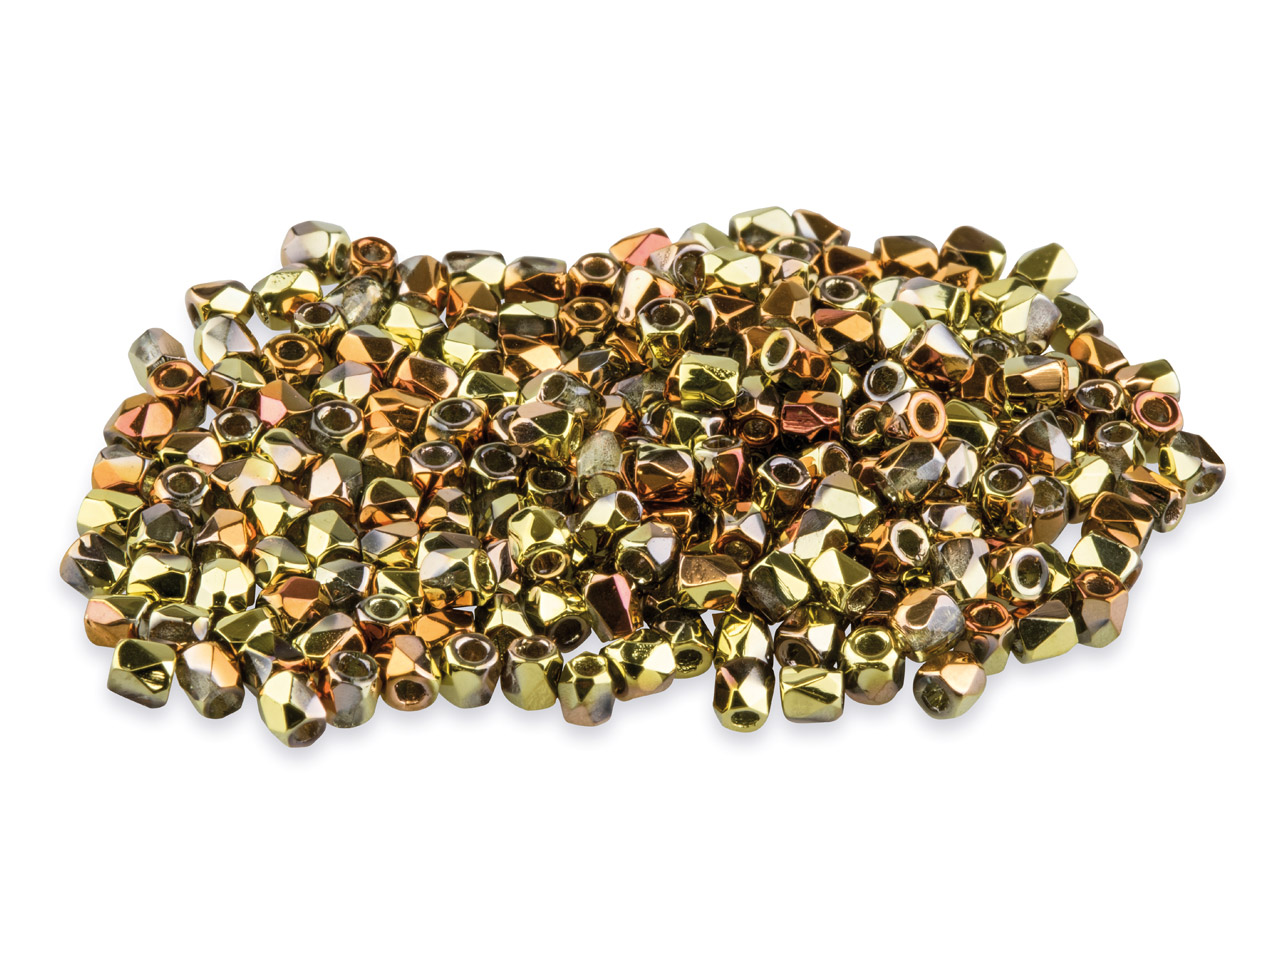 True2 2mm Czech Fire Polished      Beads, Crystal California Gold     Rush, 2g Pack